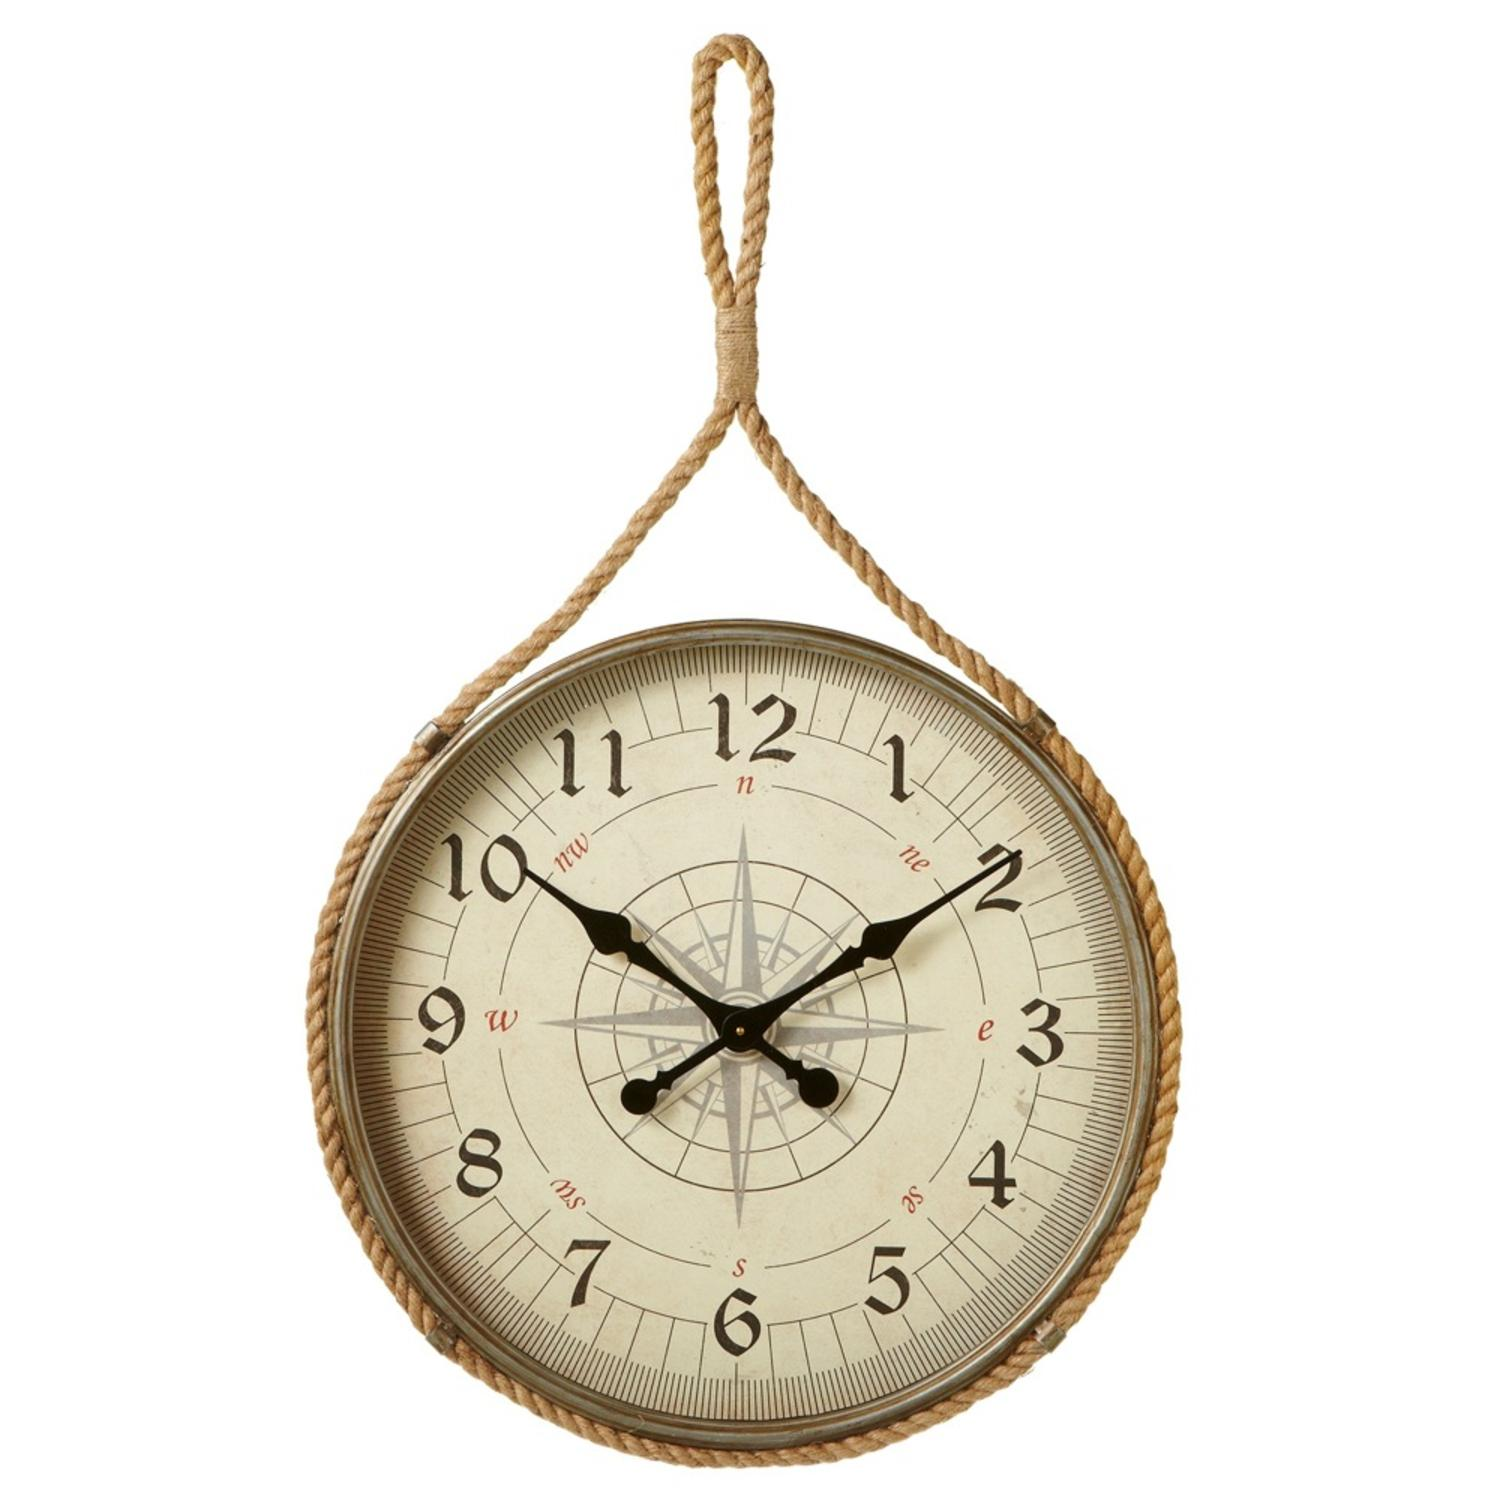 "41.75"" Tan and Black Decorative Compass Wall Clock with Rope Hanger"